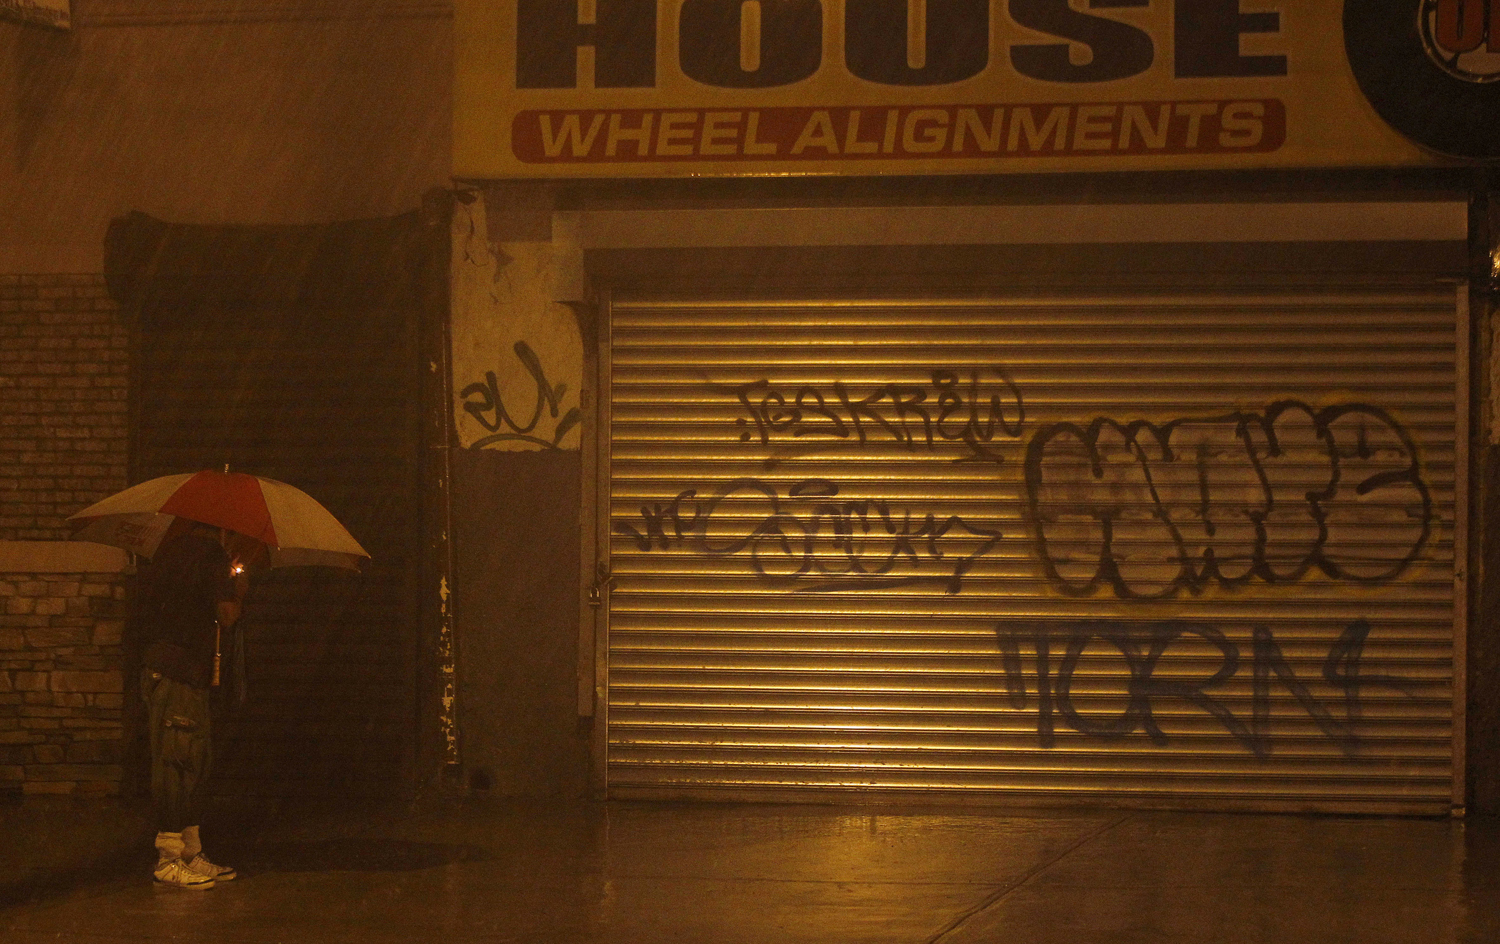 Aug. 27, 2011, Newark, New Jersey. Jose Rivera, 70, pauses on his way home from a night club on Saturday night to light a cigarette as heavy rain from incoming Hurricane Irene covers the city.